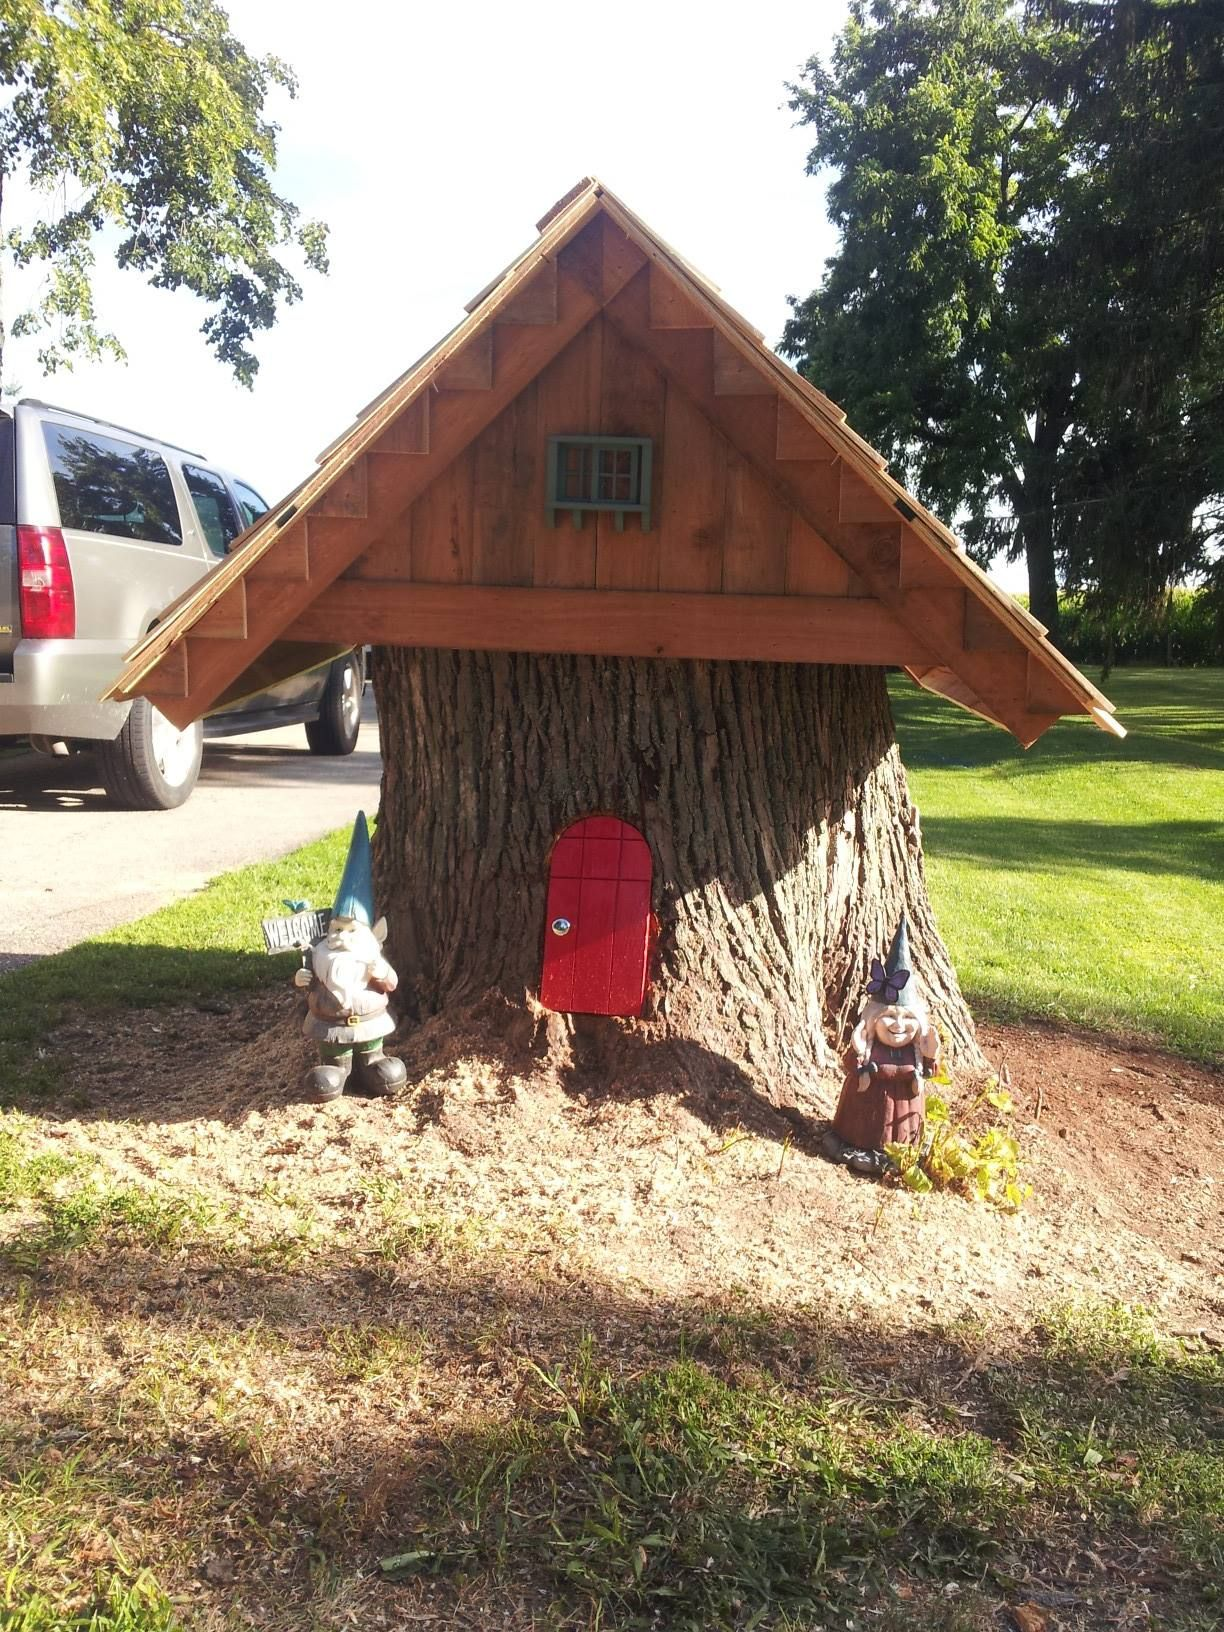 Tree stump fairy house - Our Gnome House From A Tree Stump